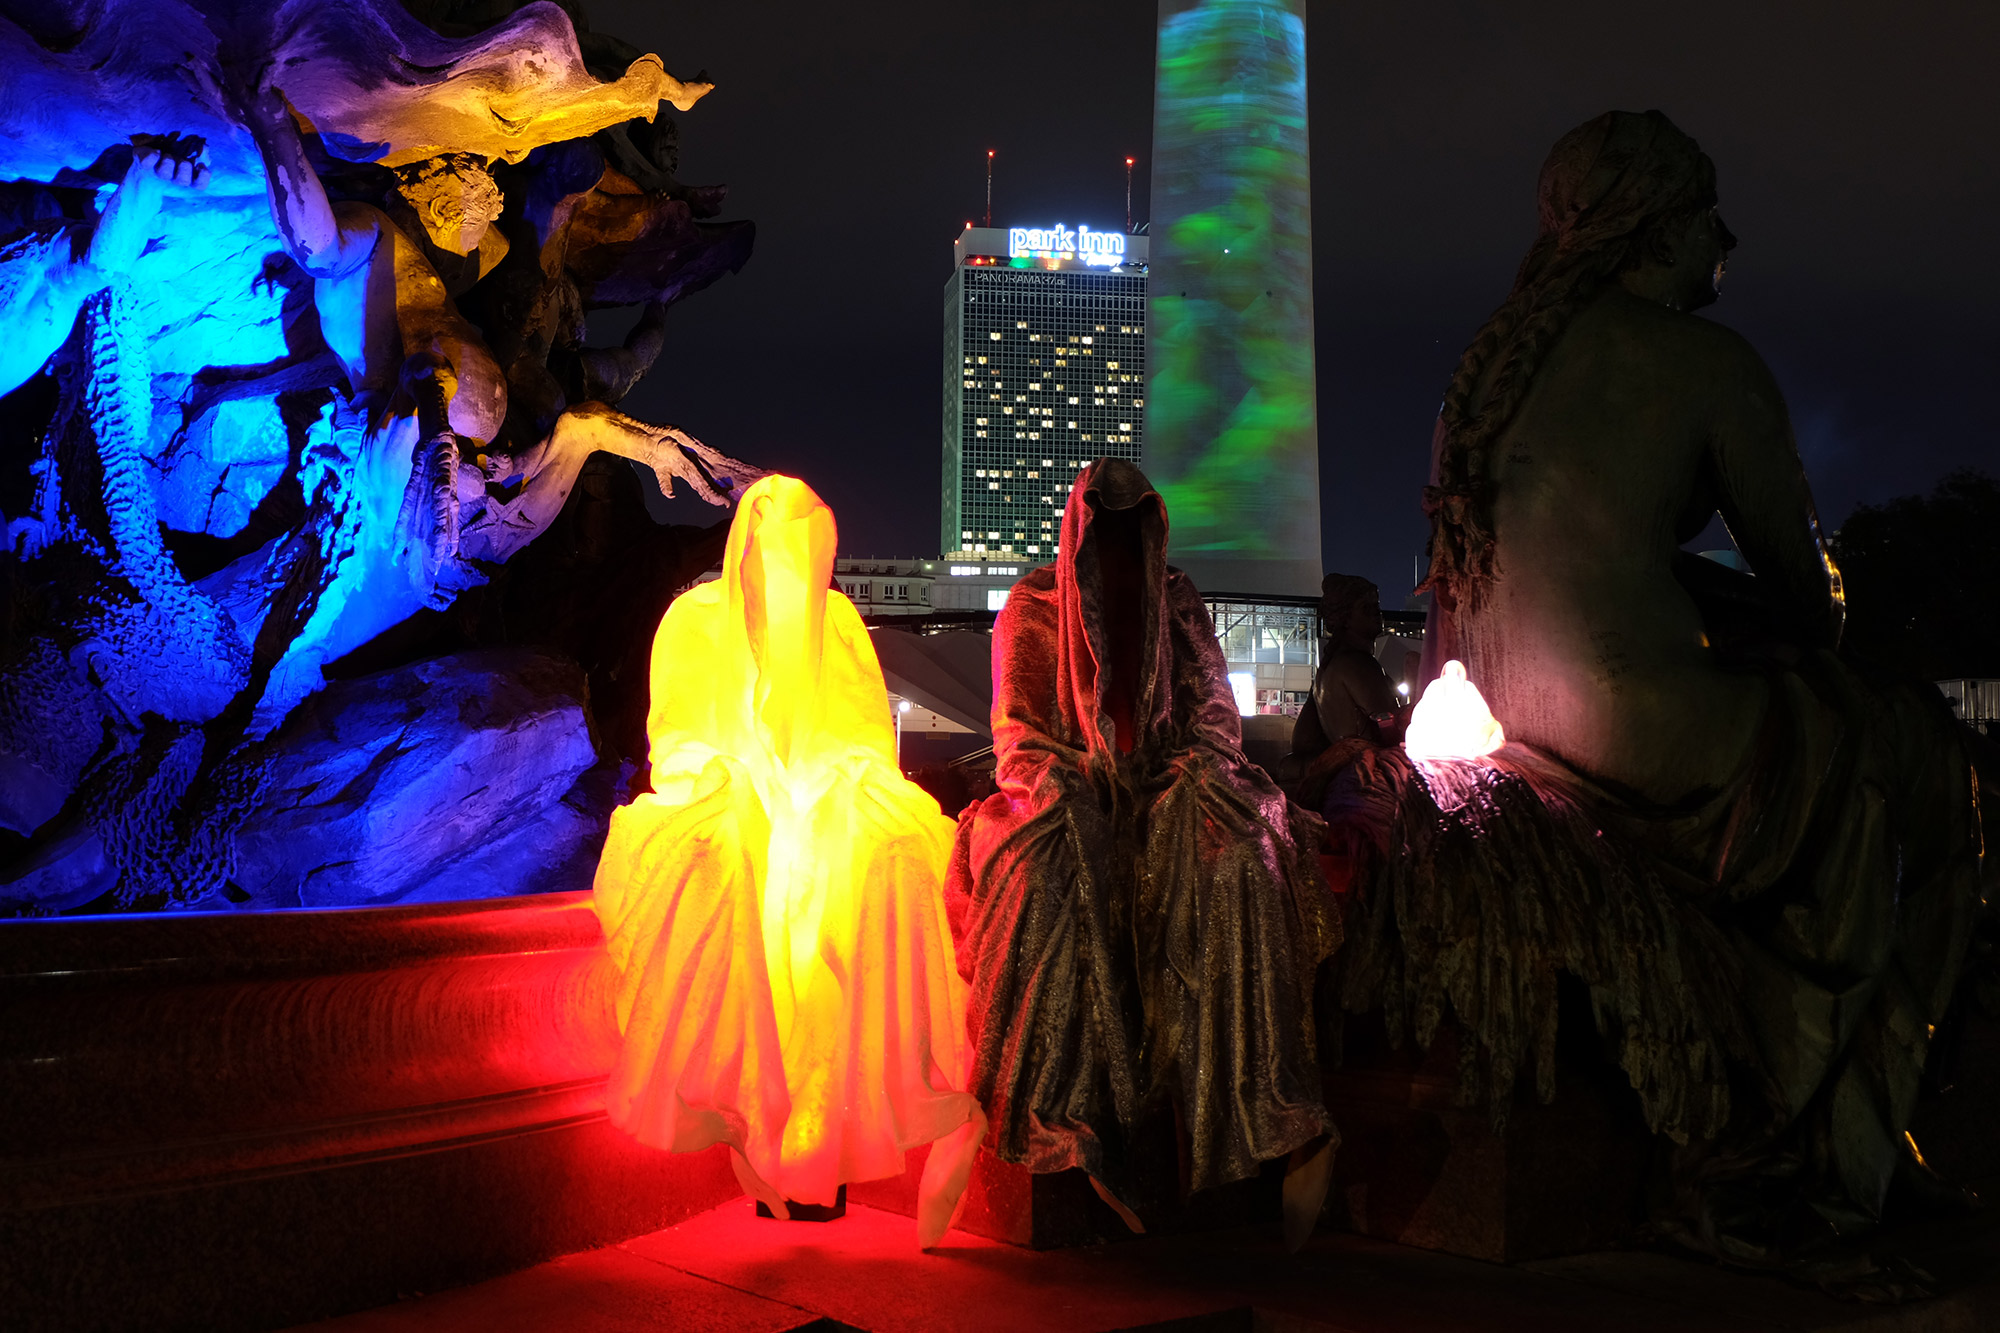 festival-of-lights-berlin-tv-tower-light-art-fine-arts-contemporary-art-guardians-of-time-manfred-kielnhofer-8731